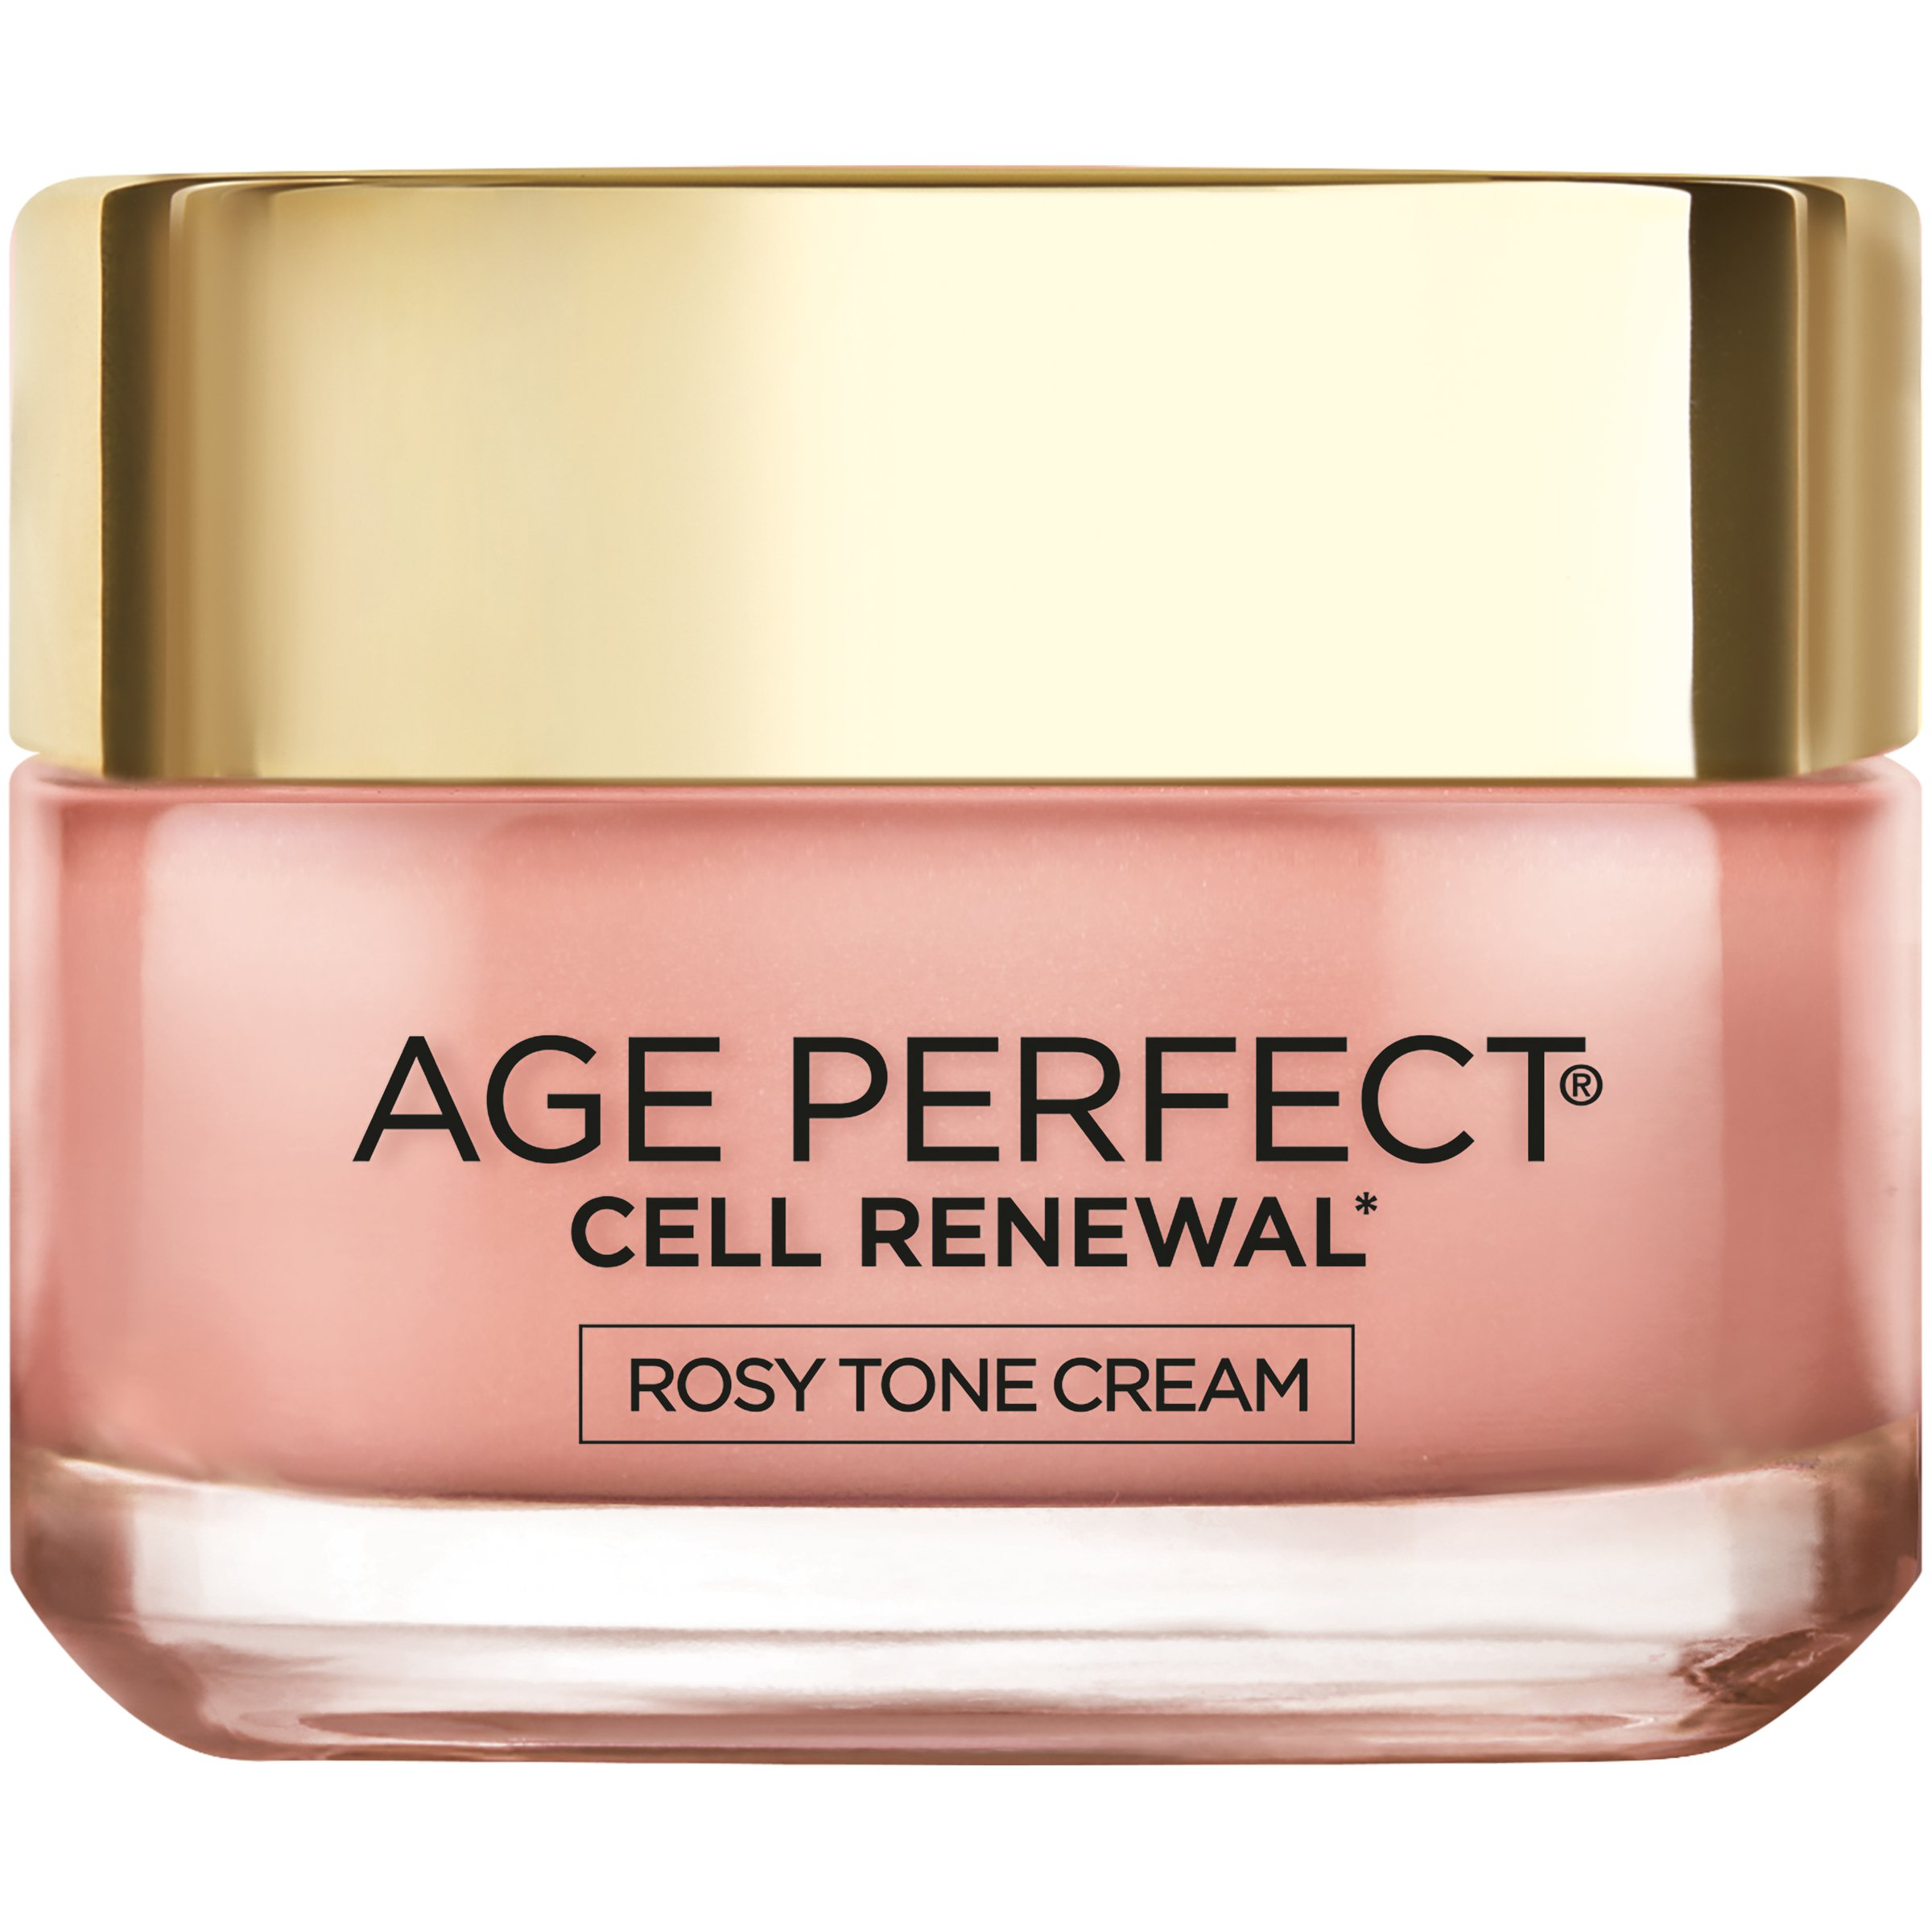 L'Oréal Paris Age Perfect Cell Renewal Rosy Tone Moisturizer, 1.7 oz.